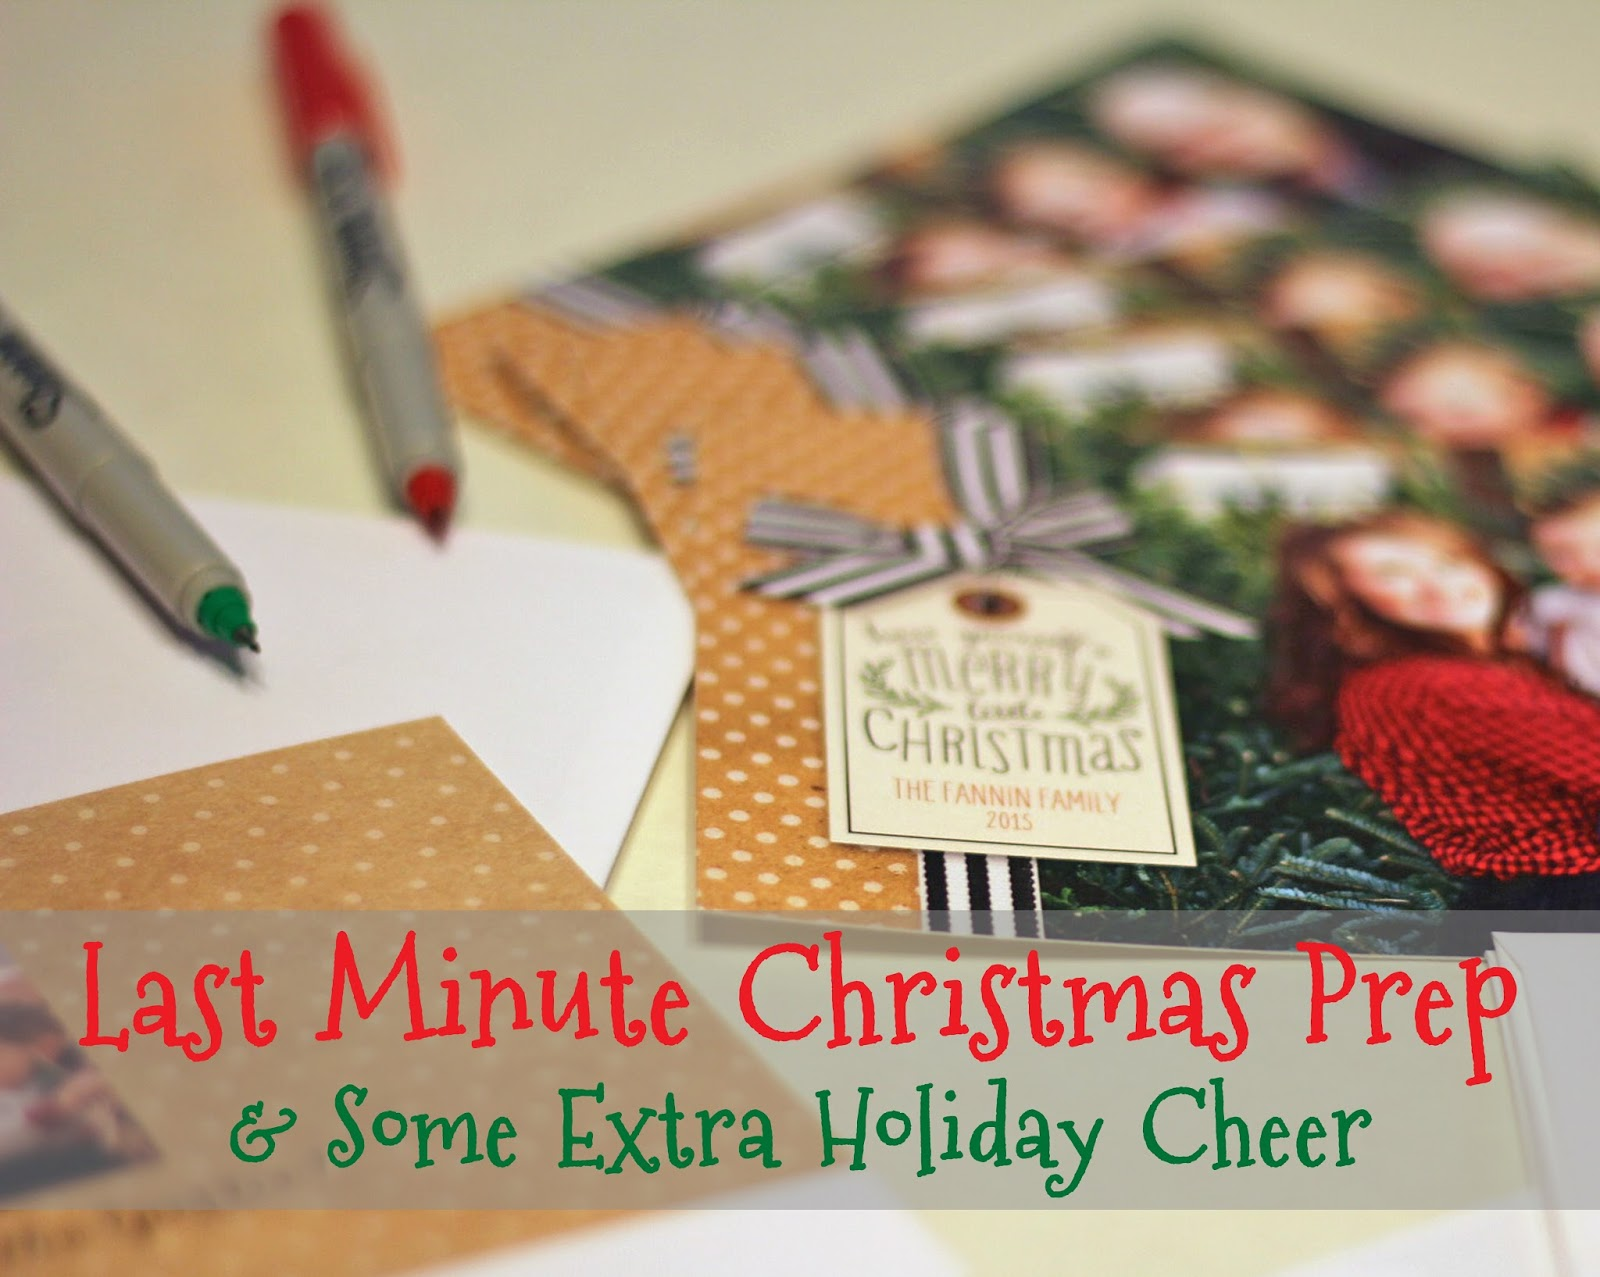 Last Minute Christmas Prep & Some Extra Holiday Cheer